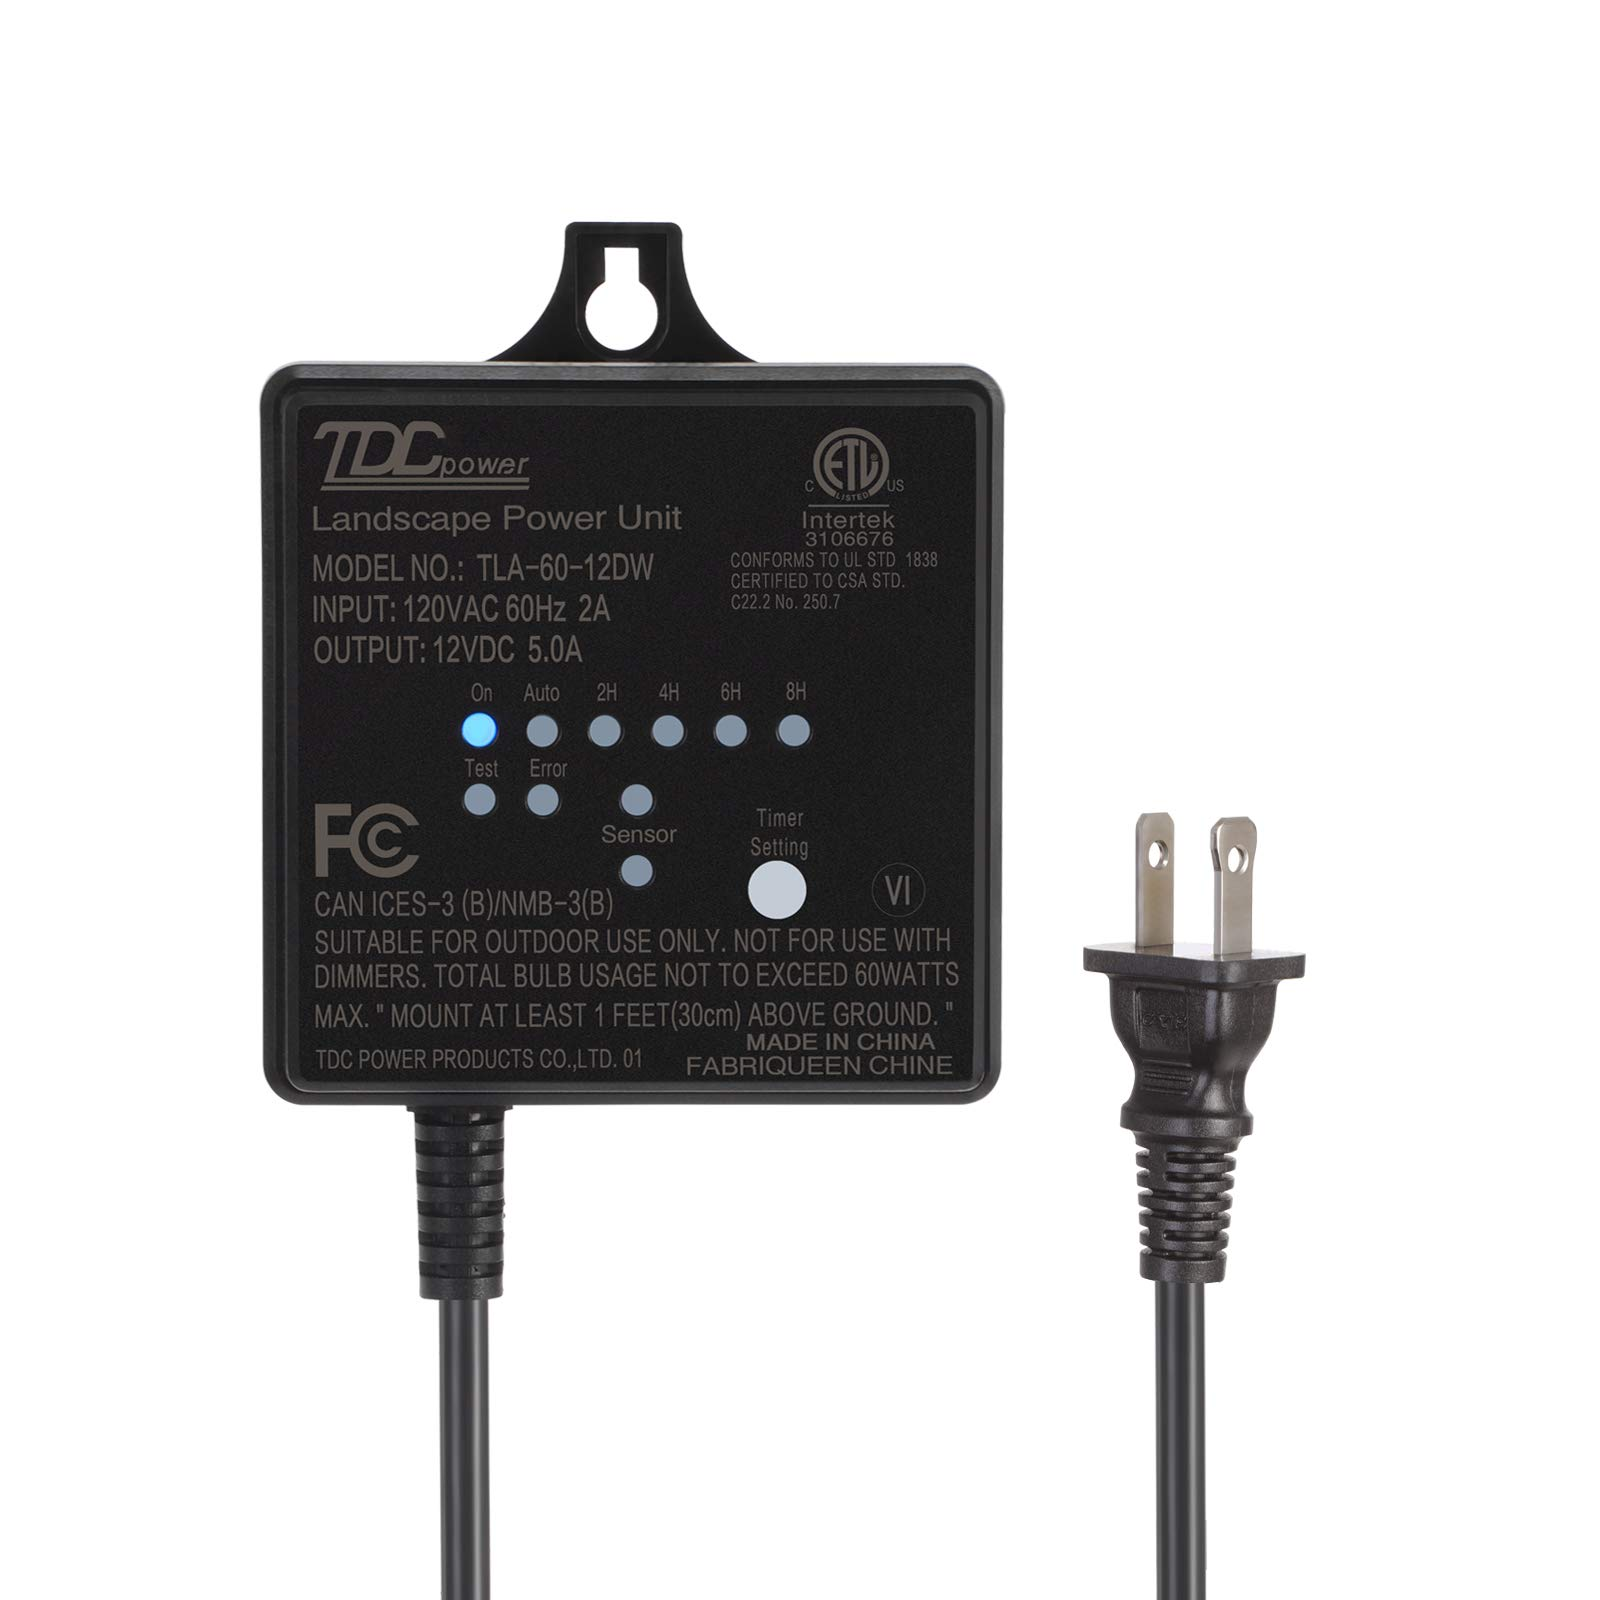 DEWENWILS 60W Outdoor Low Voltage Transformer with Timer and Photocell Light Sensor, 120V AC to 12V DC, Weatherproof, Specially for LED Landscape Lighting, Spotlight, Pathway Light, ETL Listed by DEWENWILS